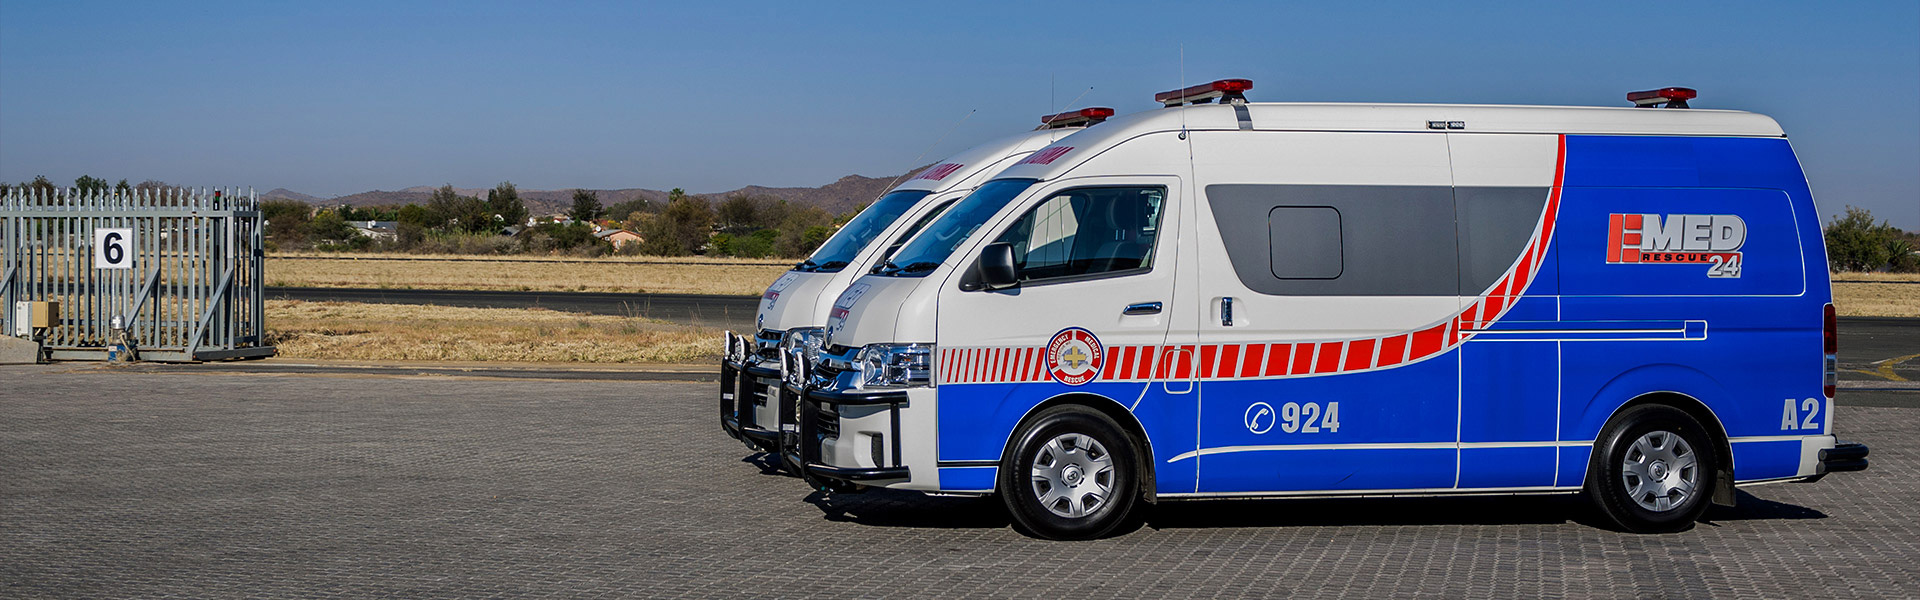 Fully Medically Equipped Road Ambulance Services